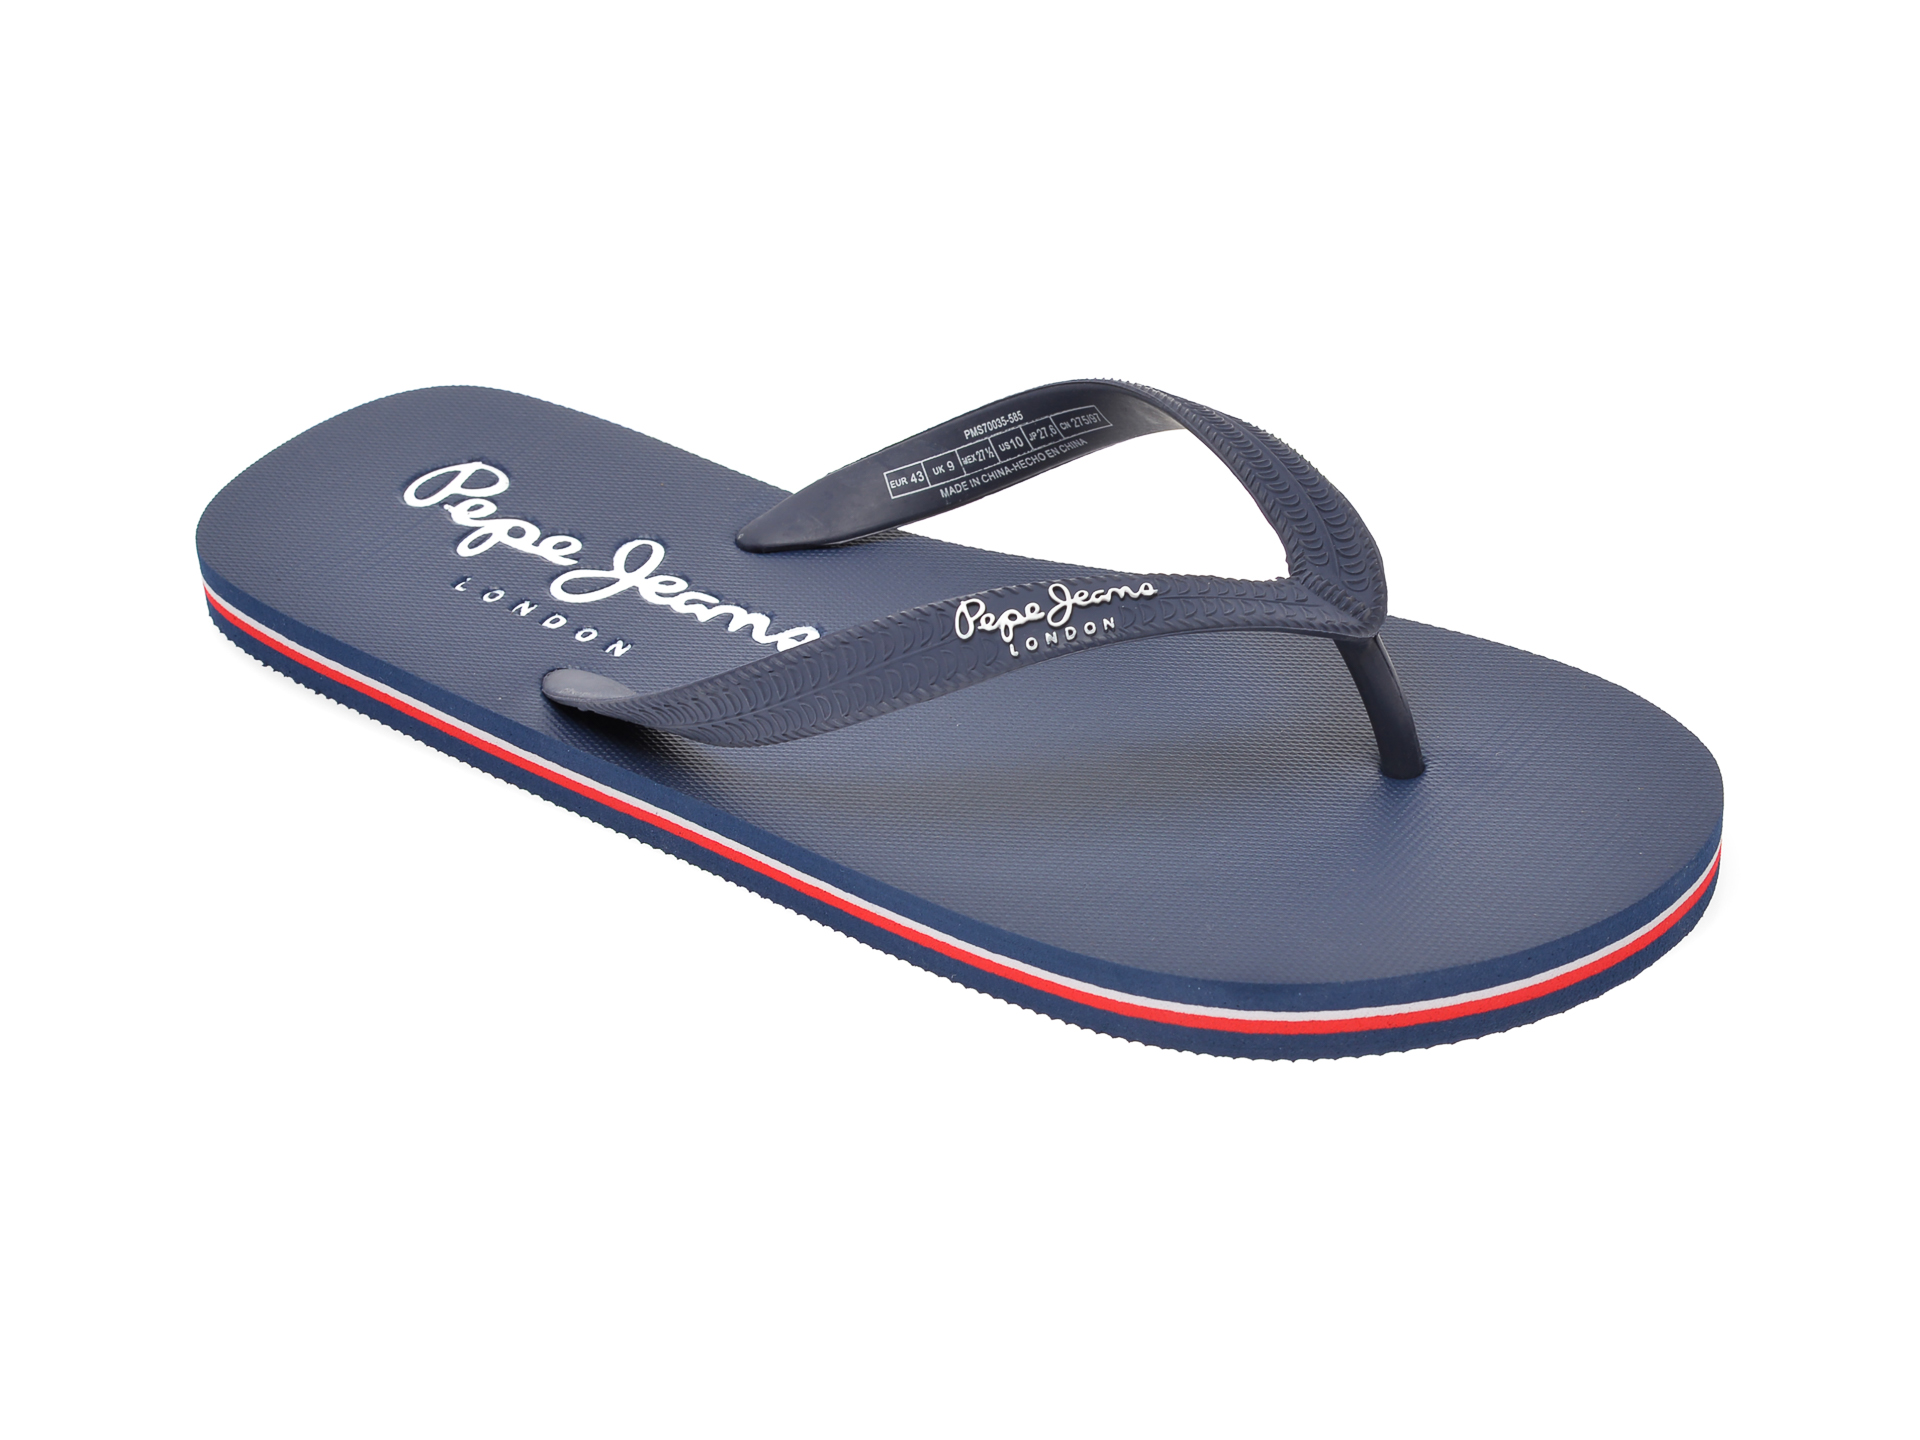 Slapi PEPE JEANS albastri, MS70035, din pvc imagine